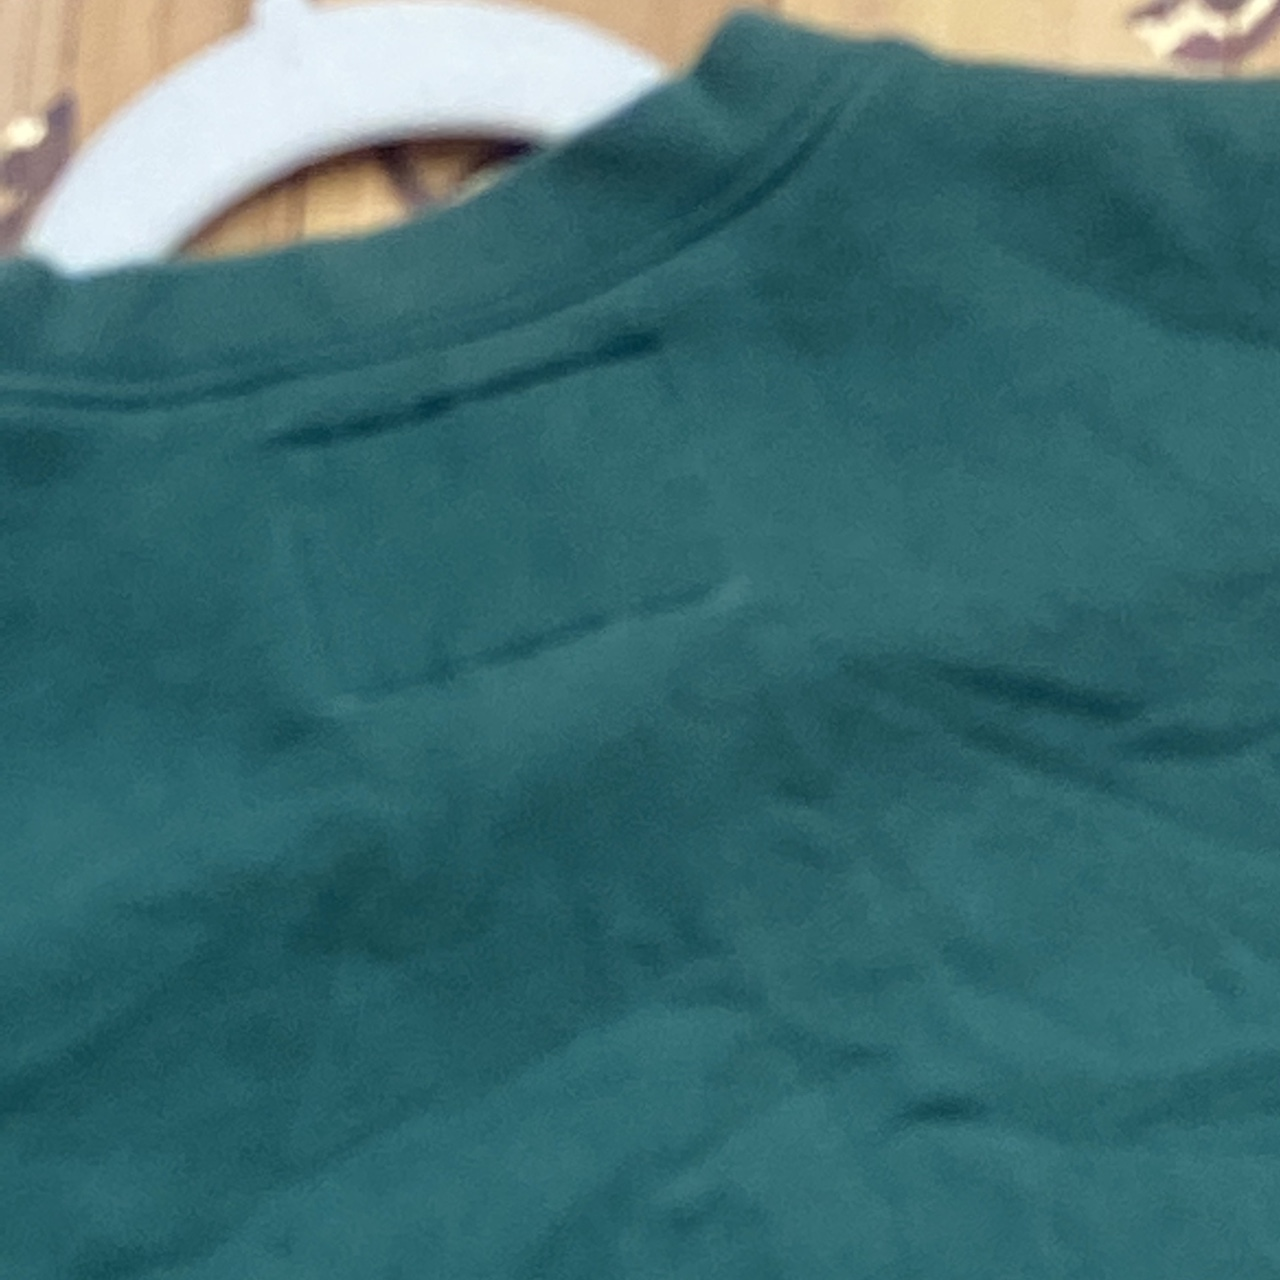 Product Image 4 - Beautiful vintage guess sweatshirt authentic